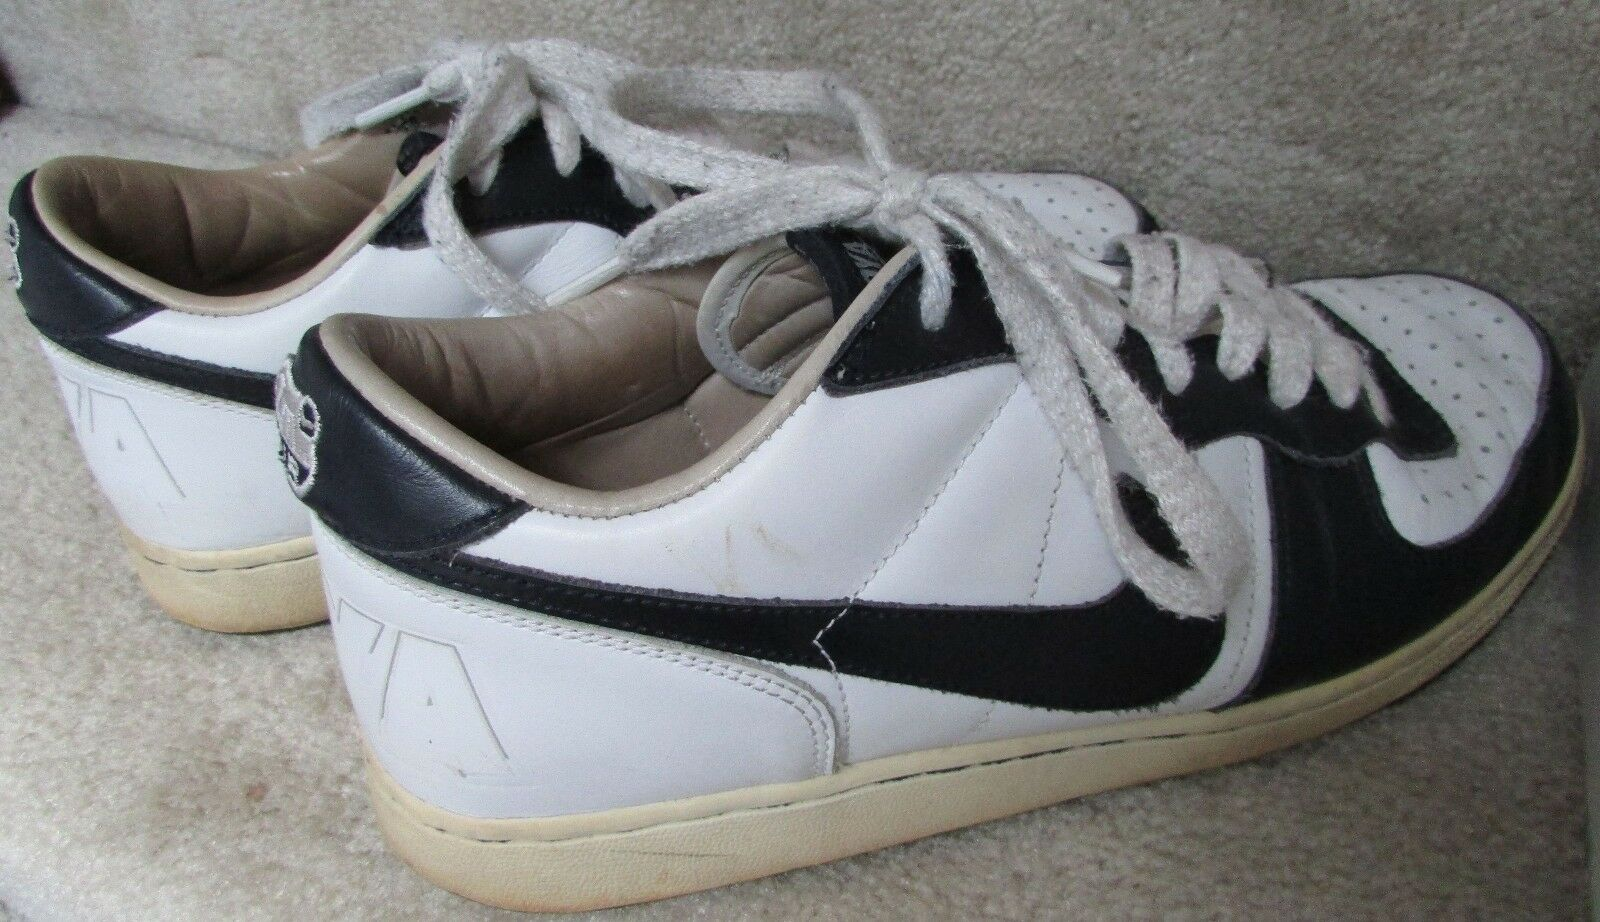 2004 Nike Zoom Terminator Low Hoyas Basketball Shoes Sneakers Comfortable Special limited time